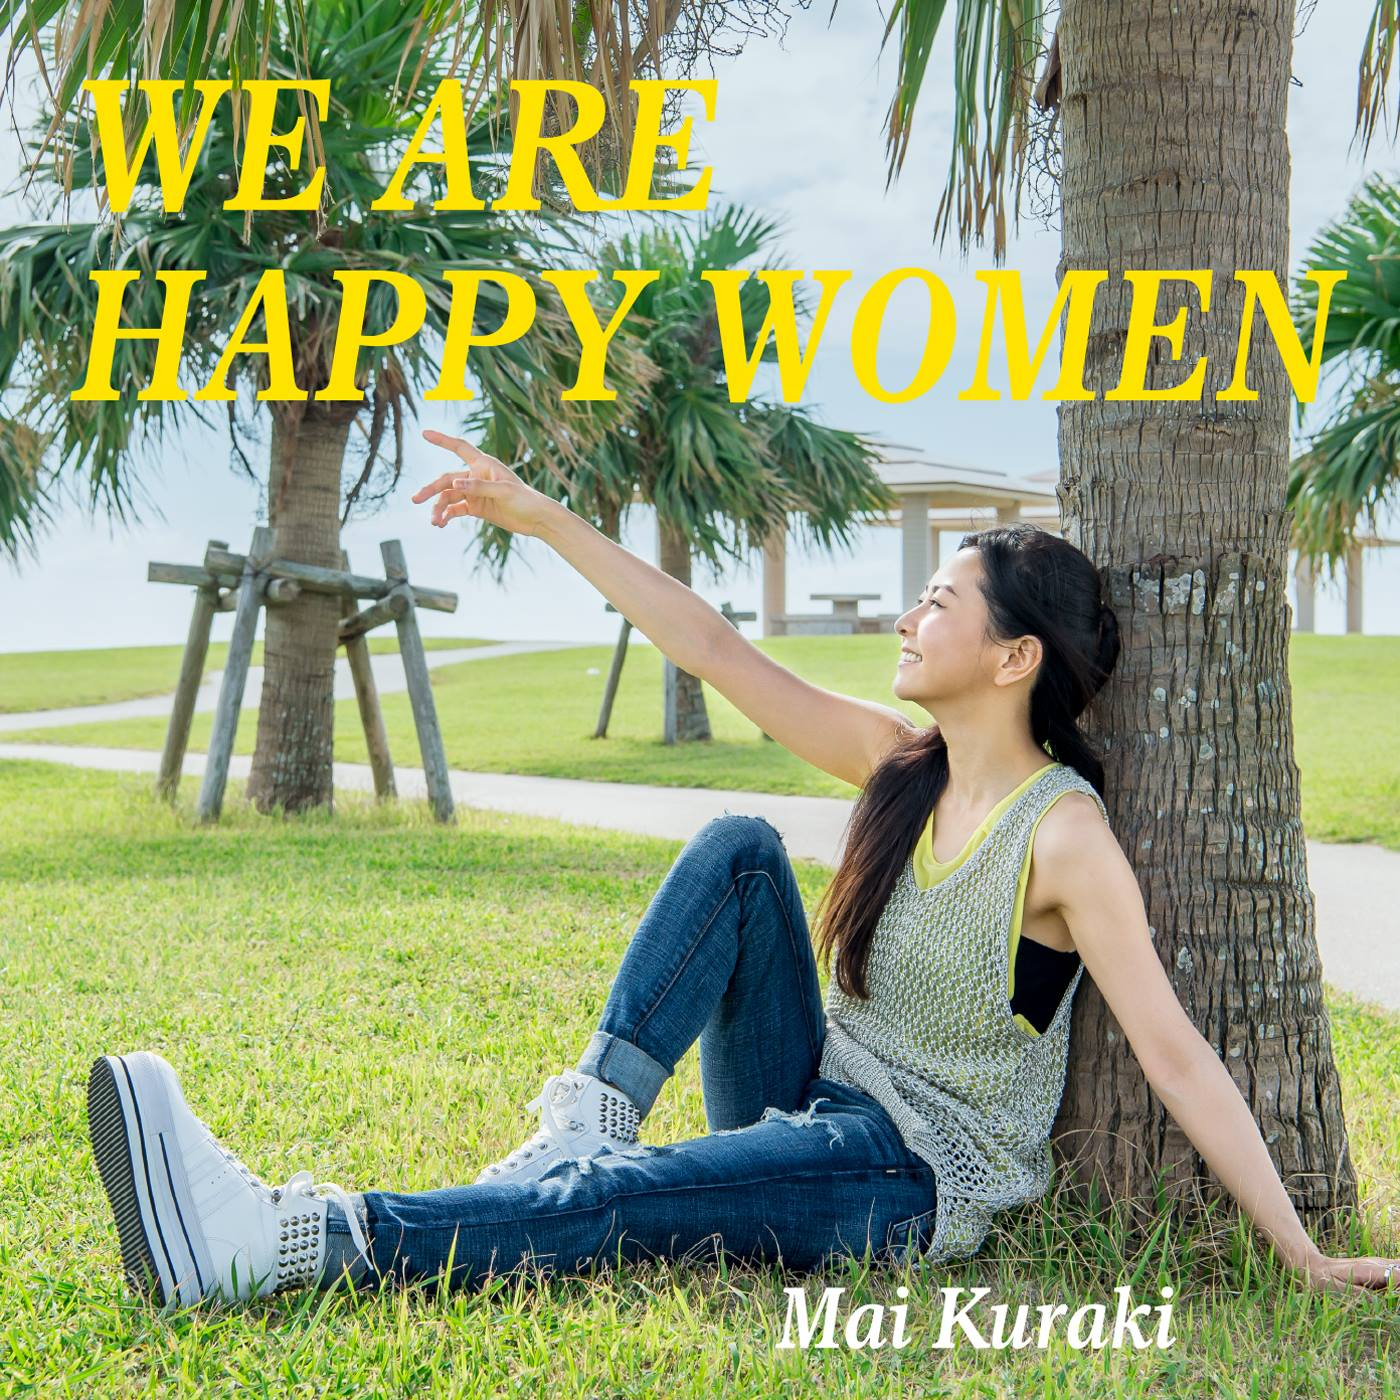 WE ARE HAPPY WOMAN